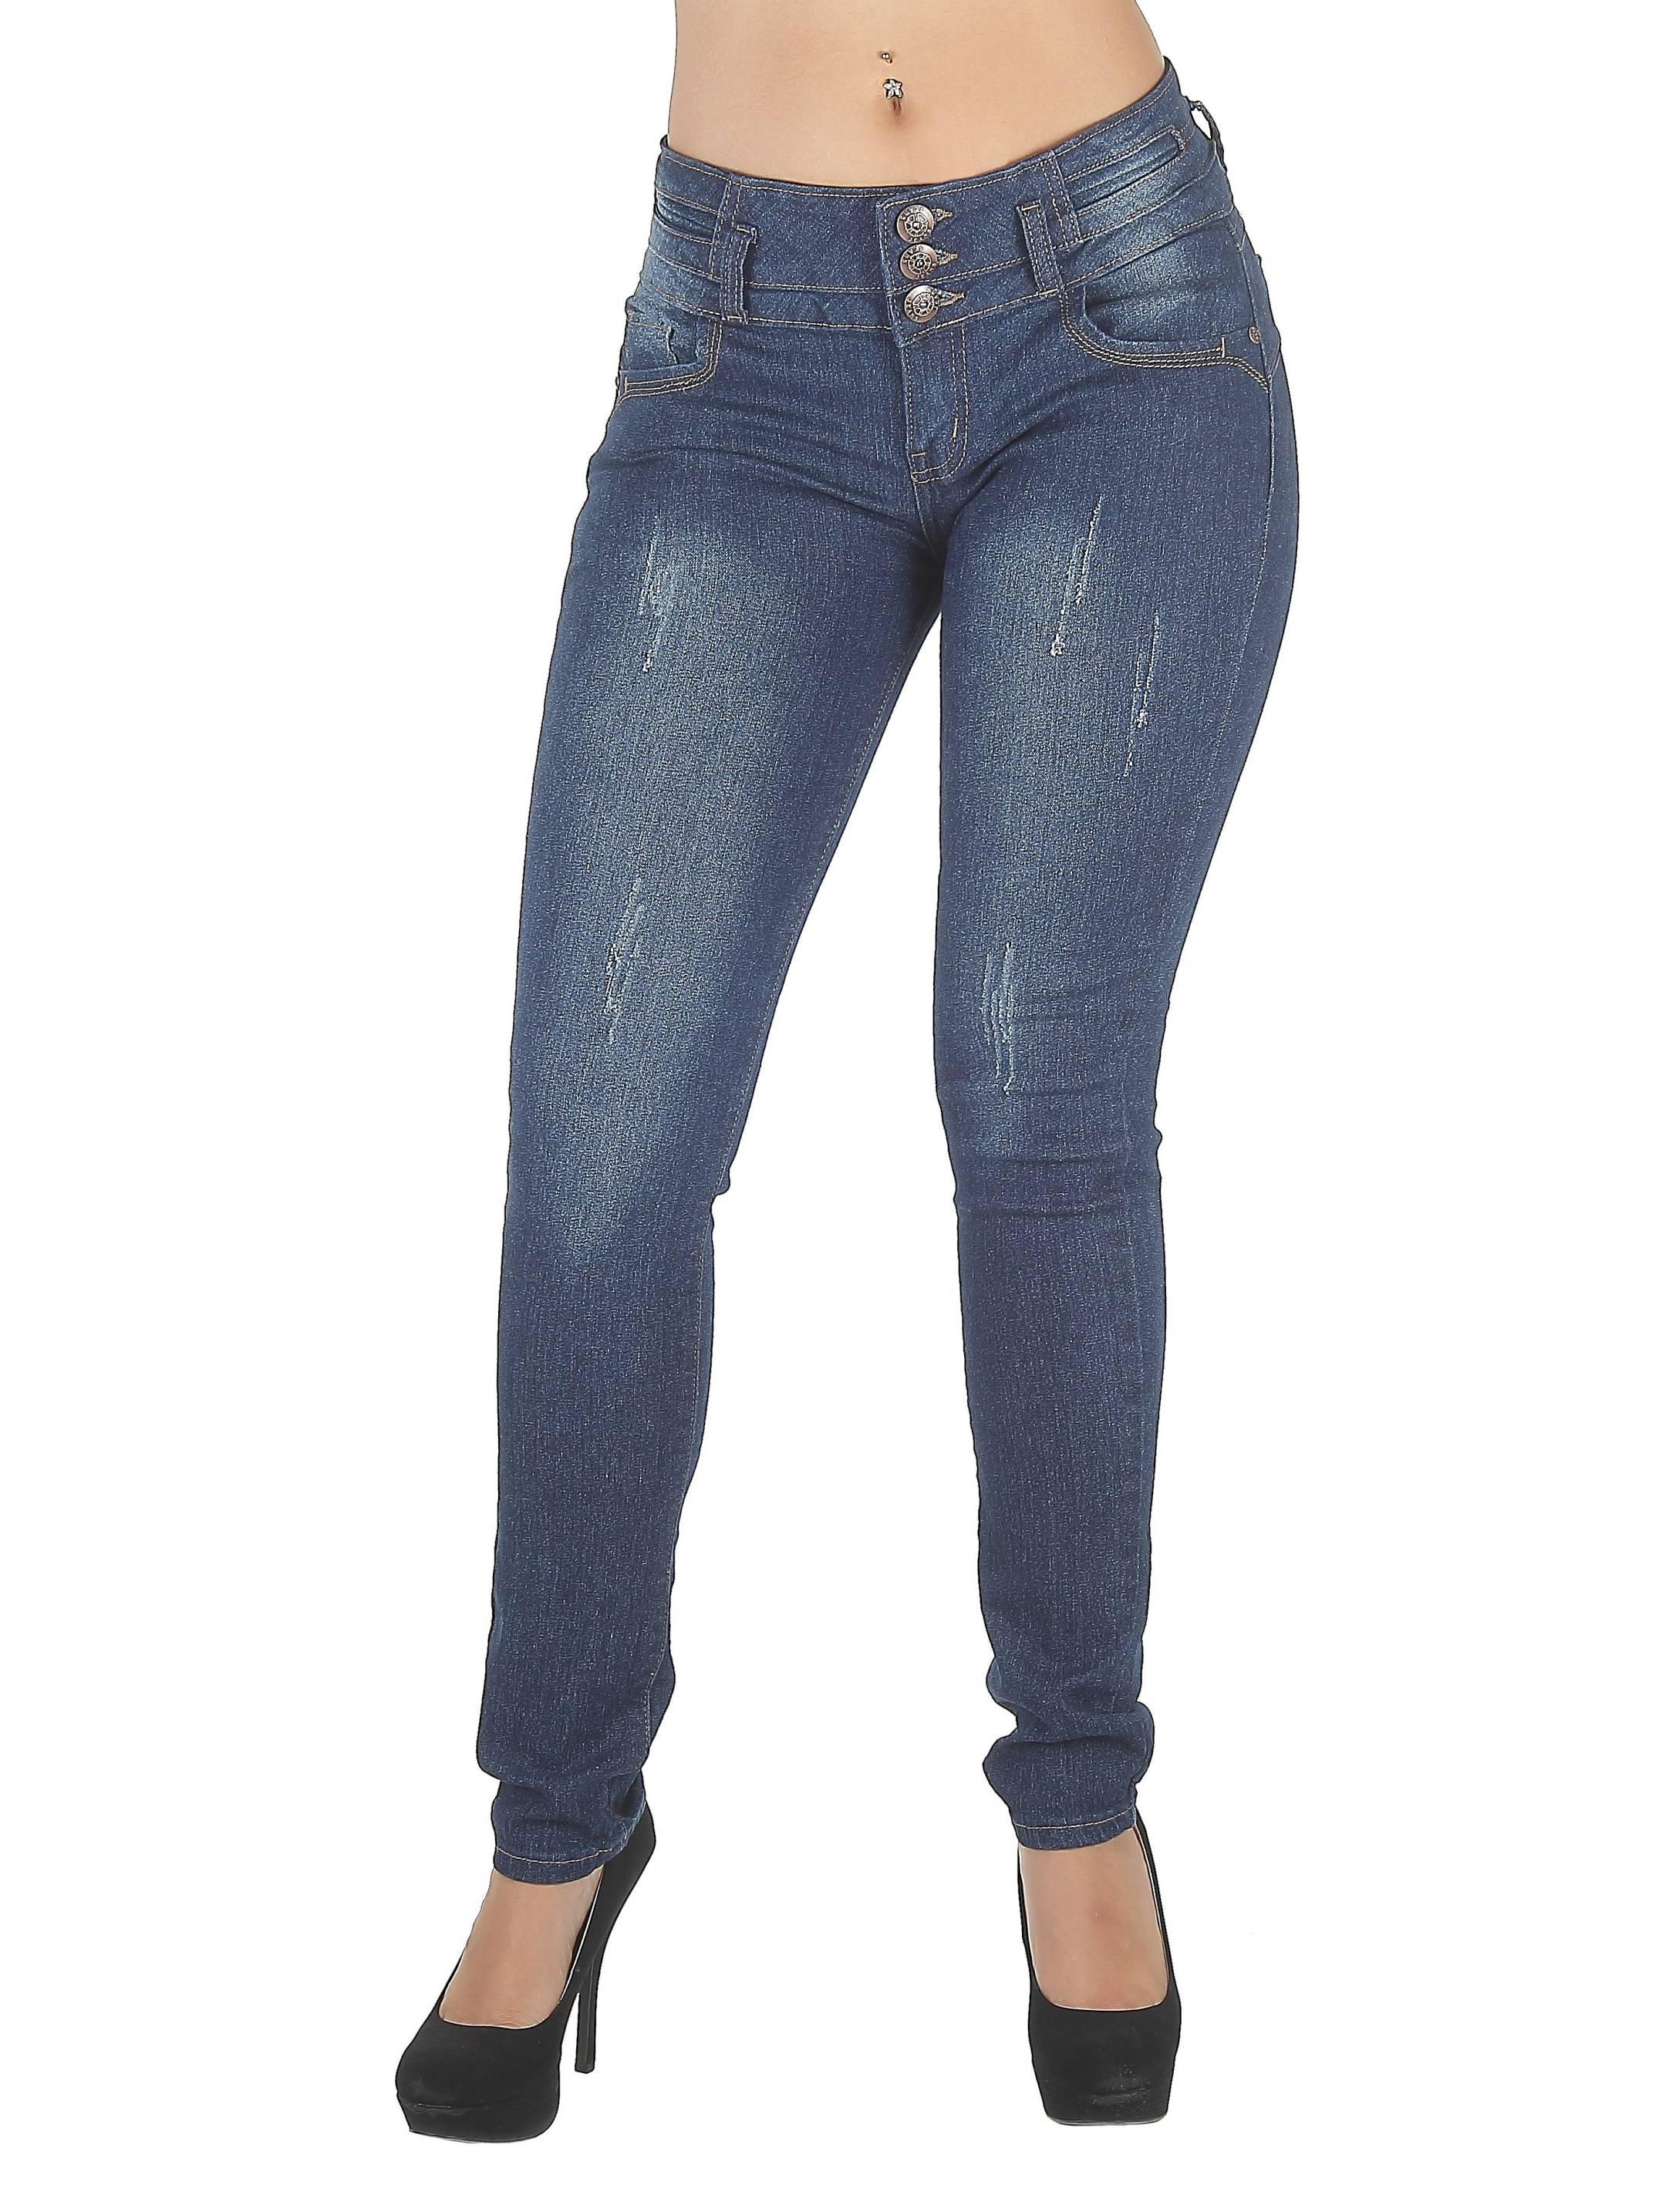 N611ATM - Colombian Design, Butt Lift, Levanta Cola, Mid Waist Sexy Skinny Jeans